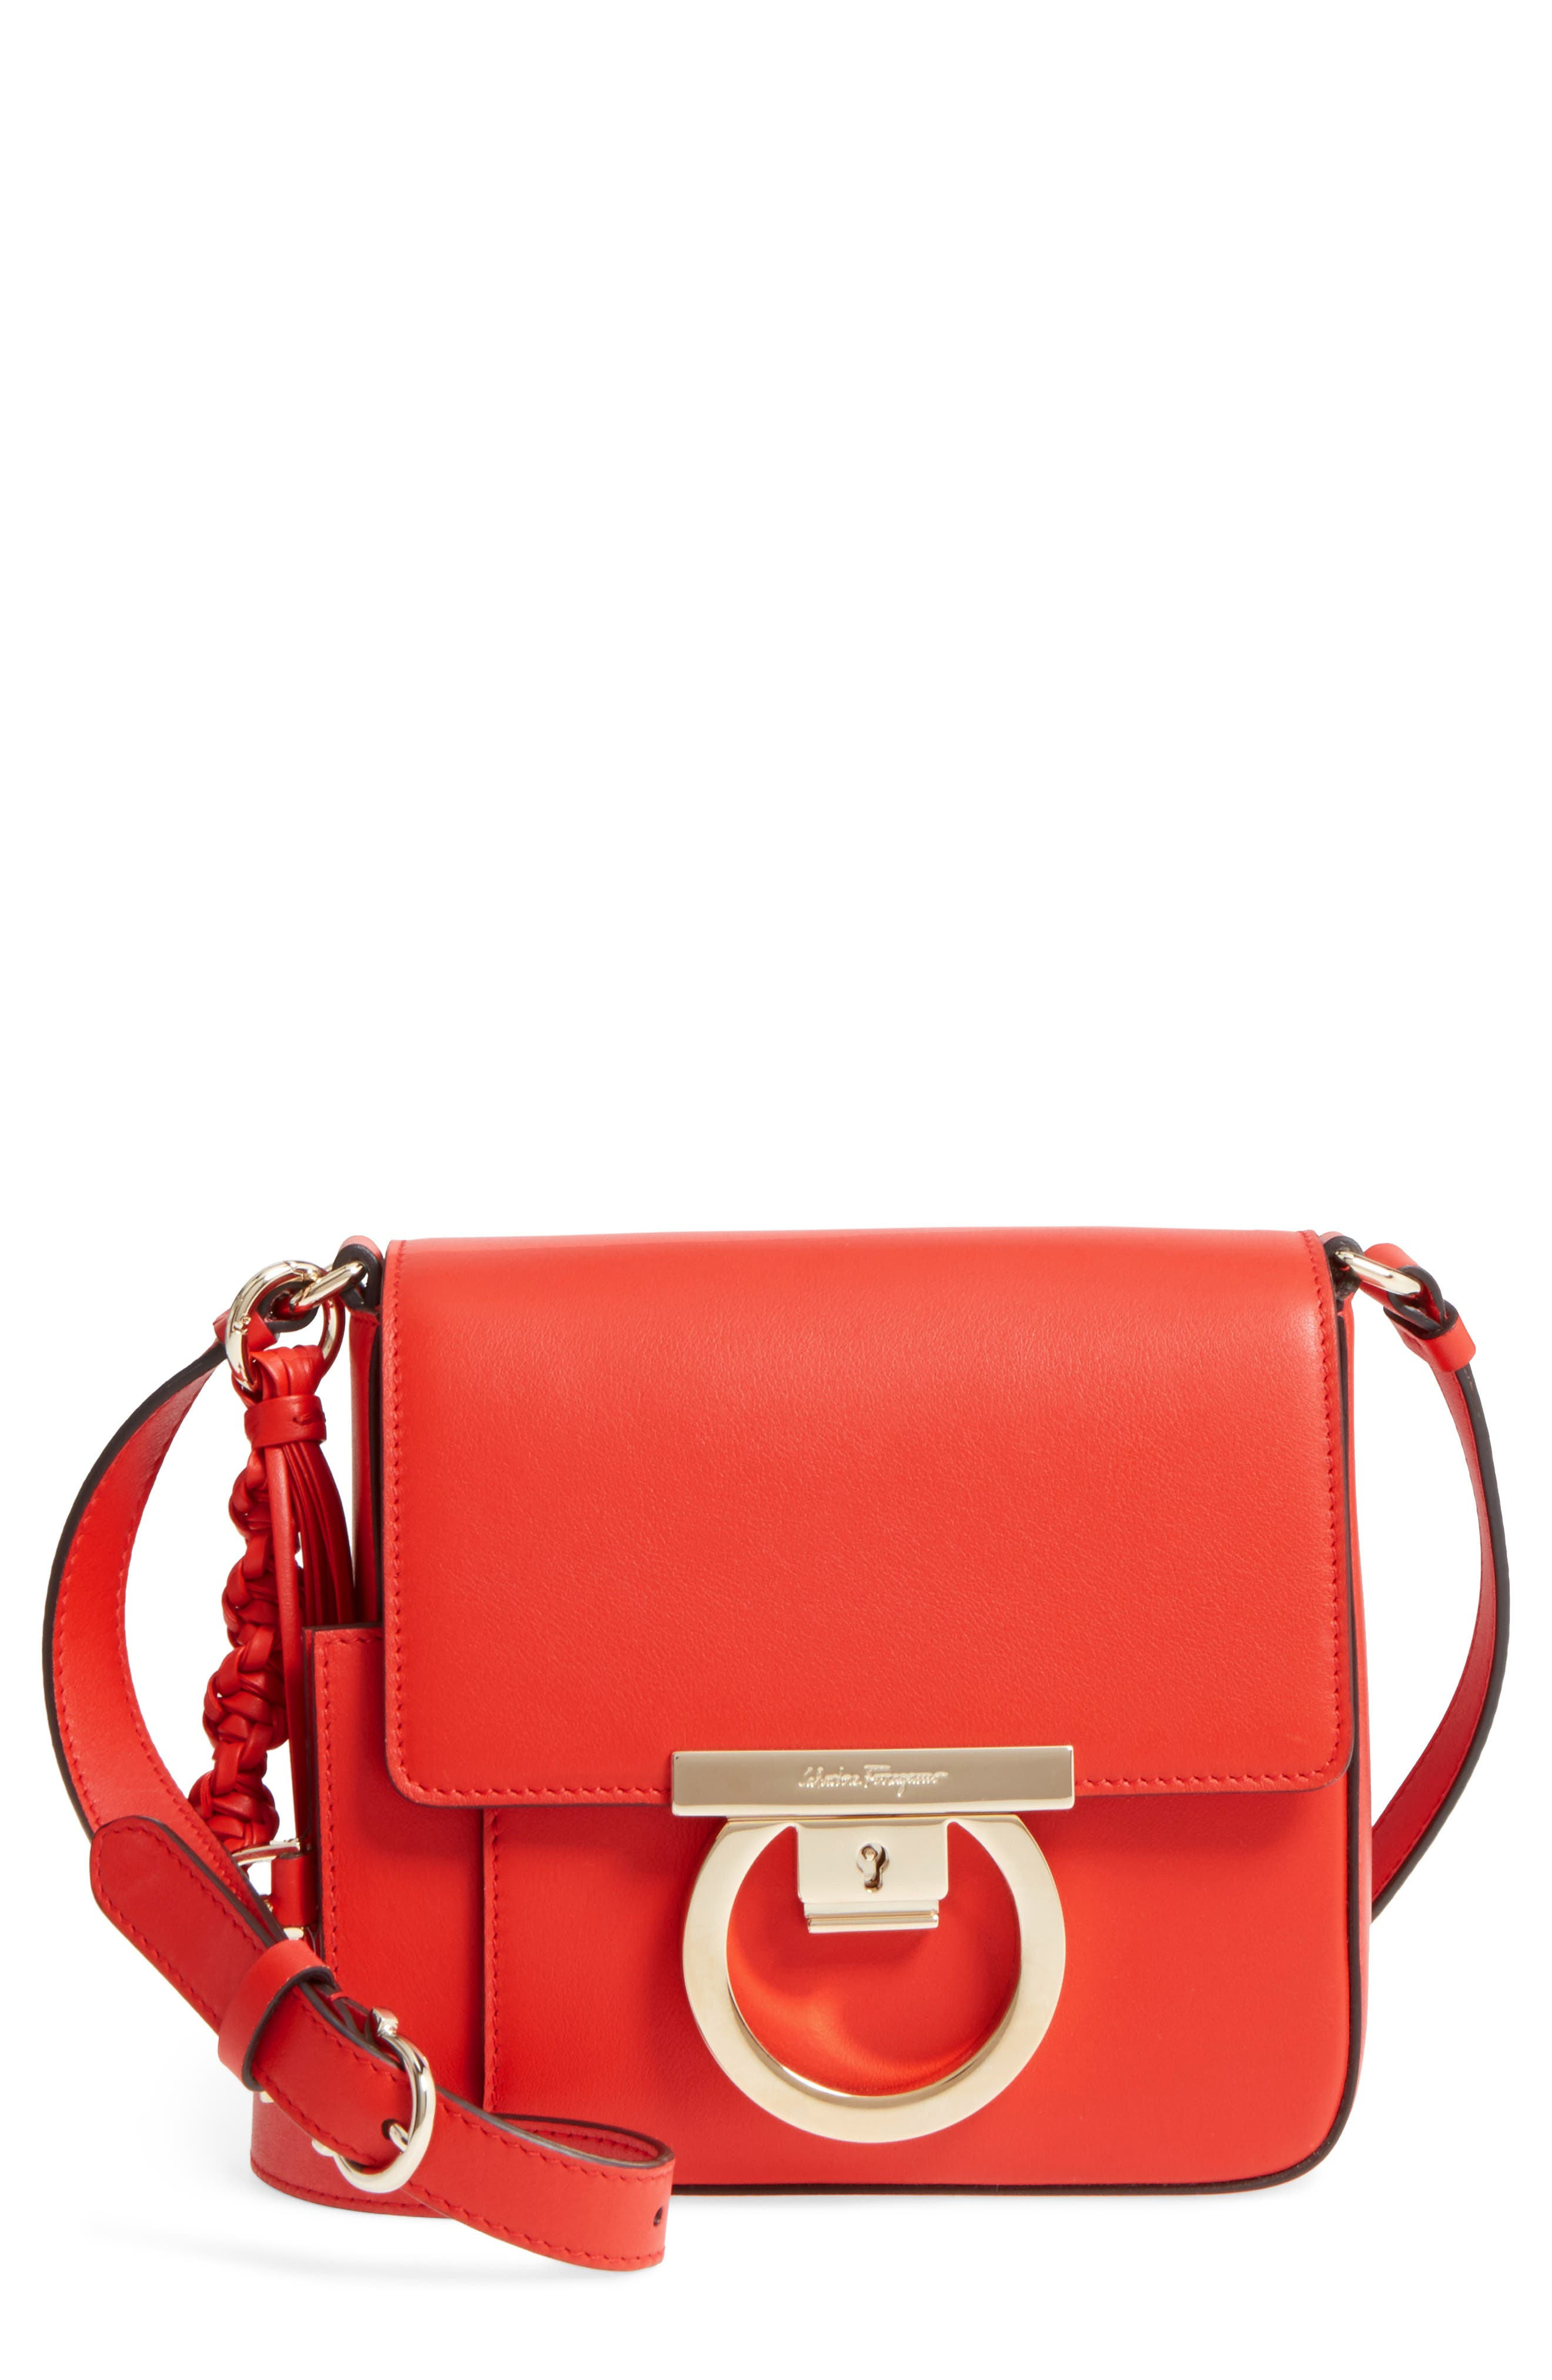 Gancio Lock Leather Crossbody Bag,                         Main,                         color, 950